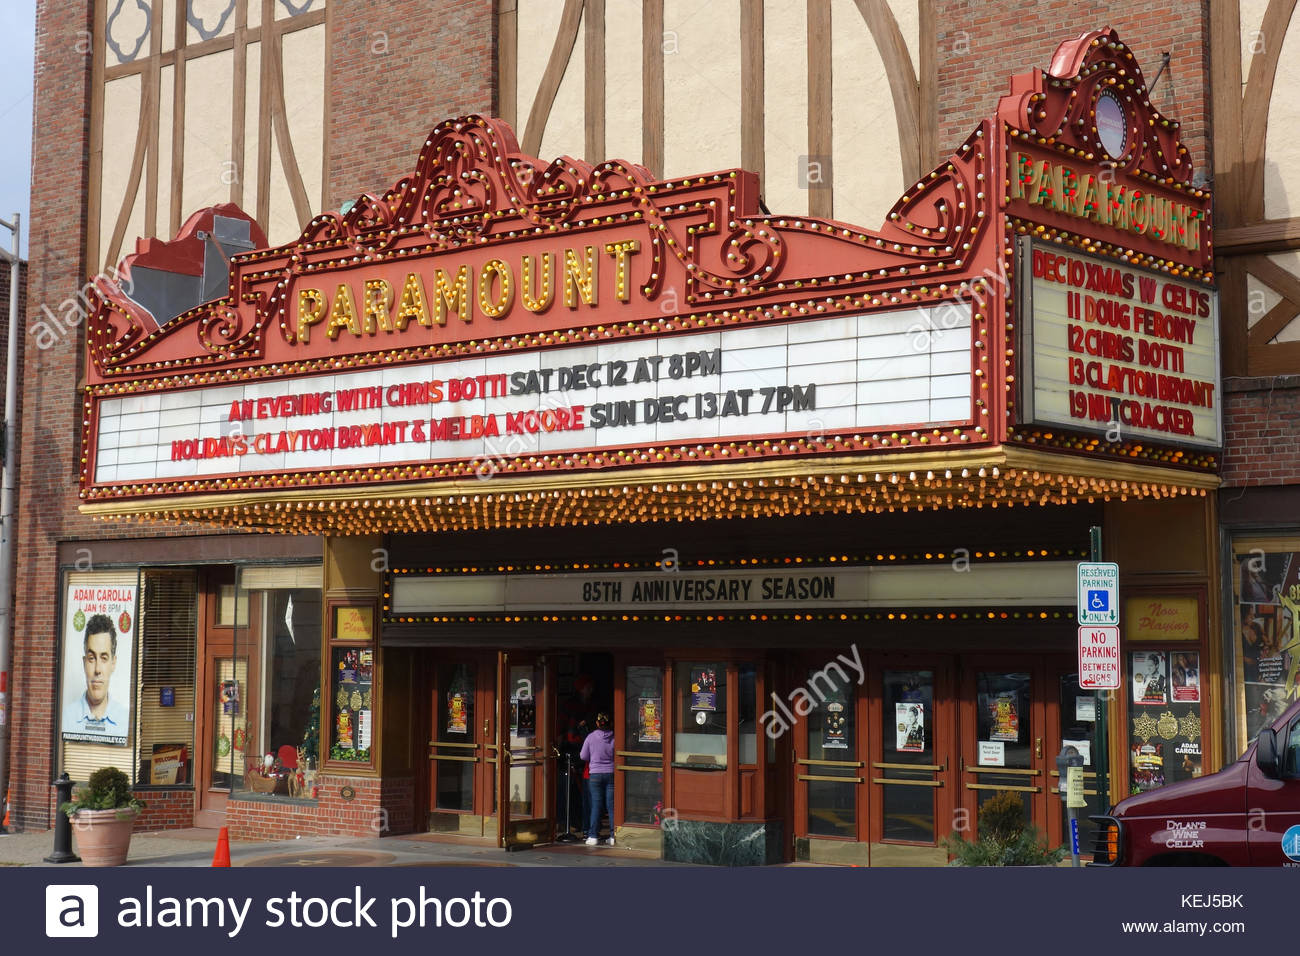 Paramount Hudson Valley Theater Entrance and Marquee - Stock Image